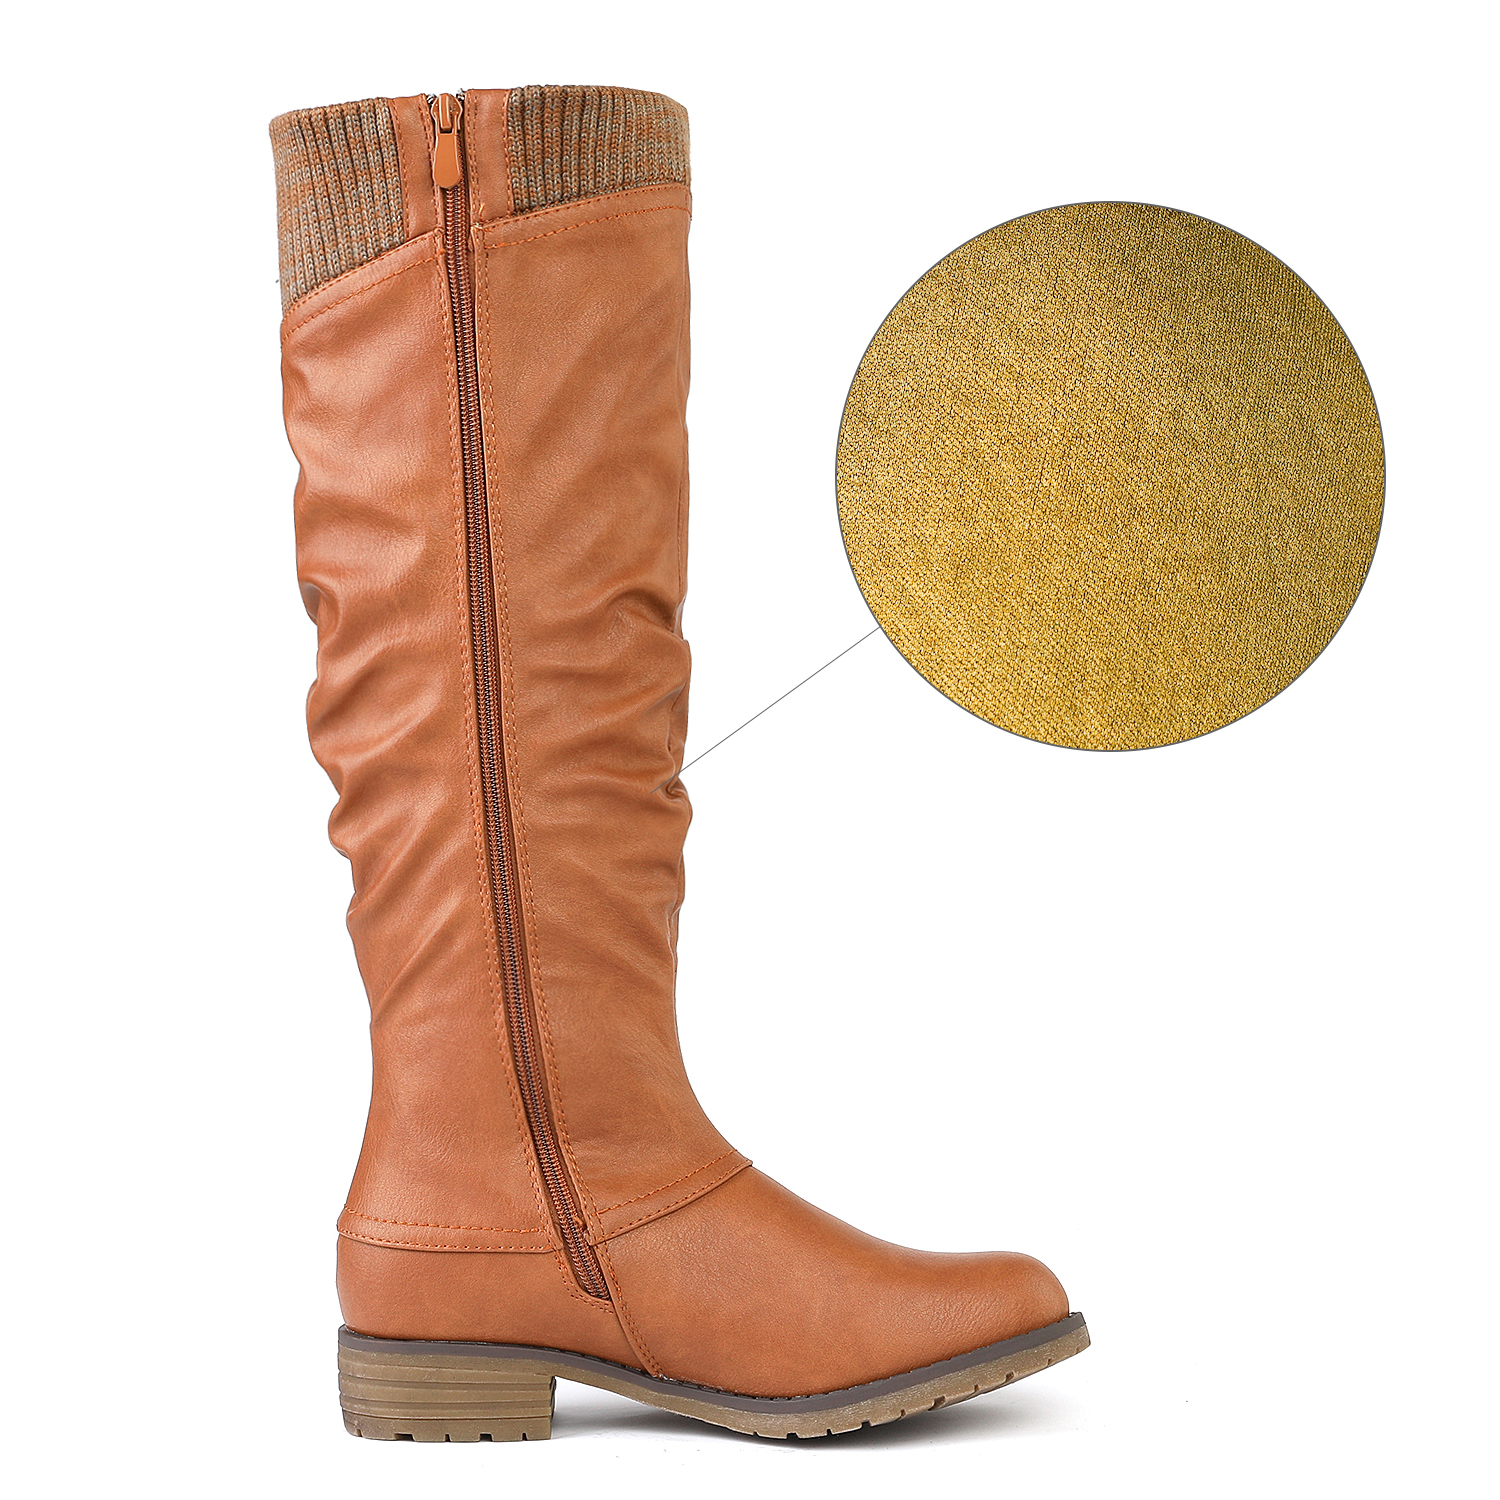 DREAM-PAIRS-Womens-DEPP-Cowgirl-Soft-PU-Leather-Combat-Knee-High-Riding-Boots thumbnail 21